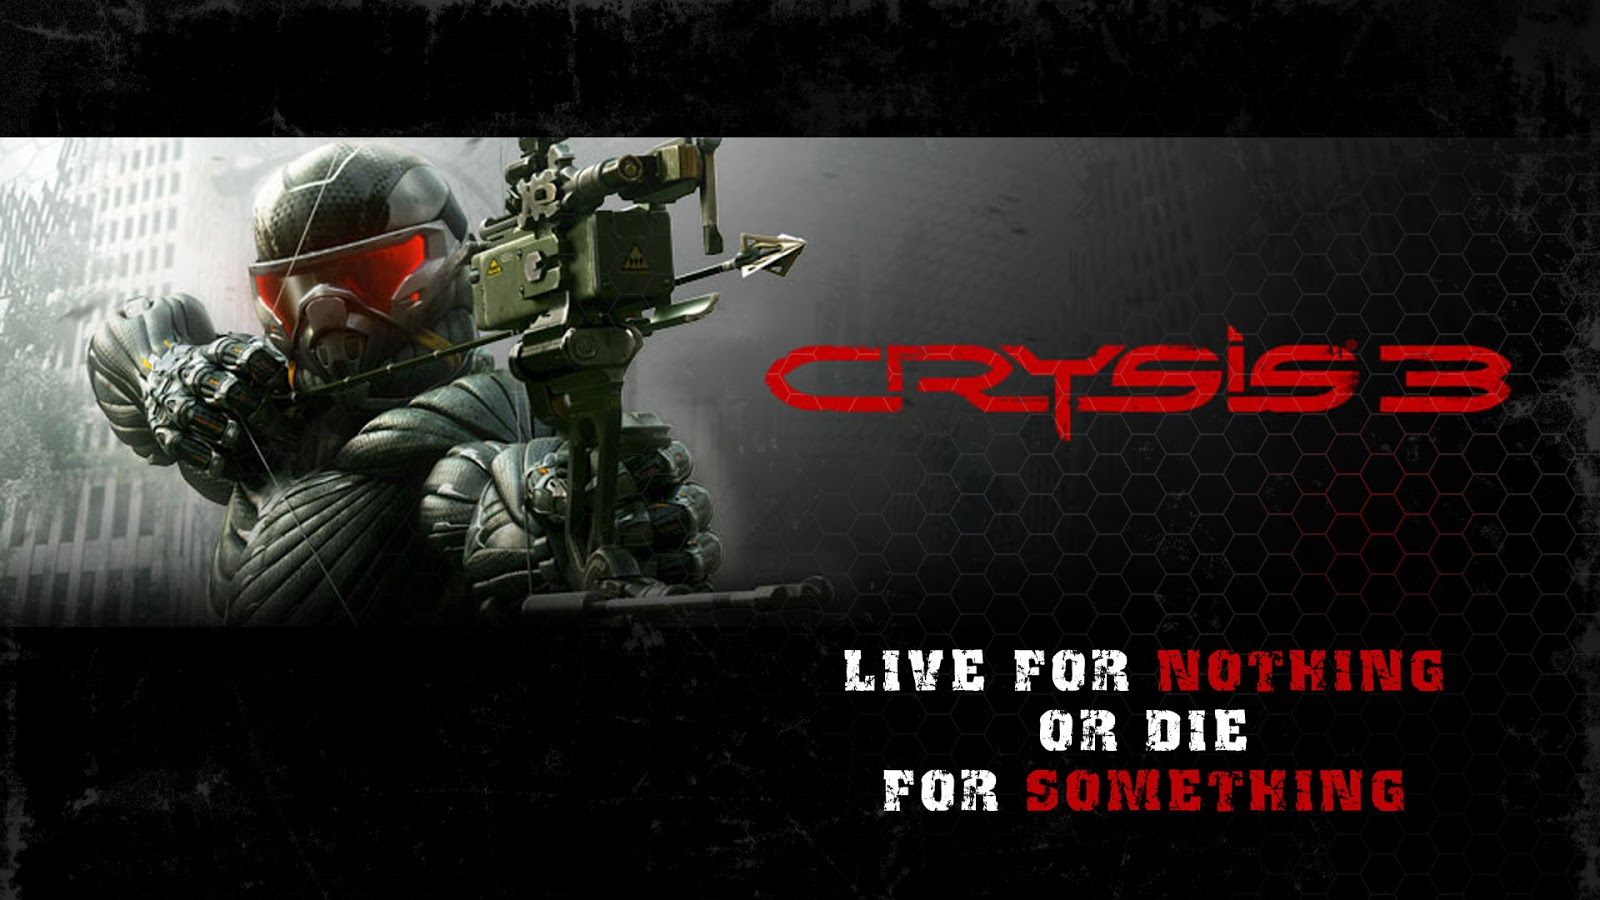 Crysis 3 Keygen + Crack Download 2013 ~ Hacks4Games